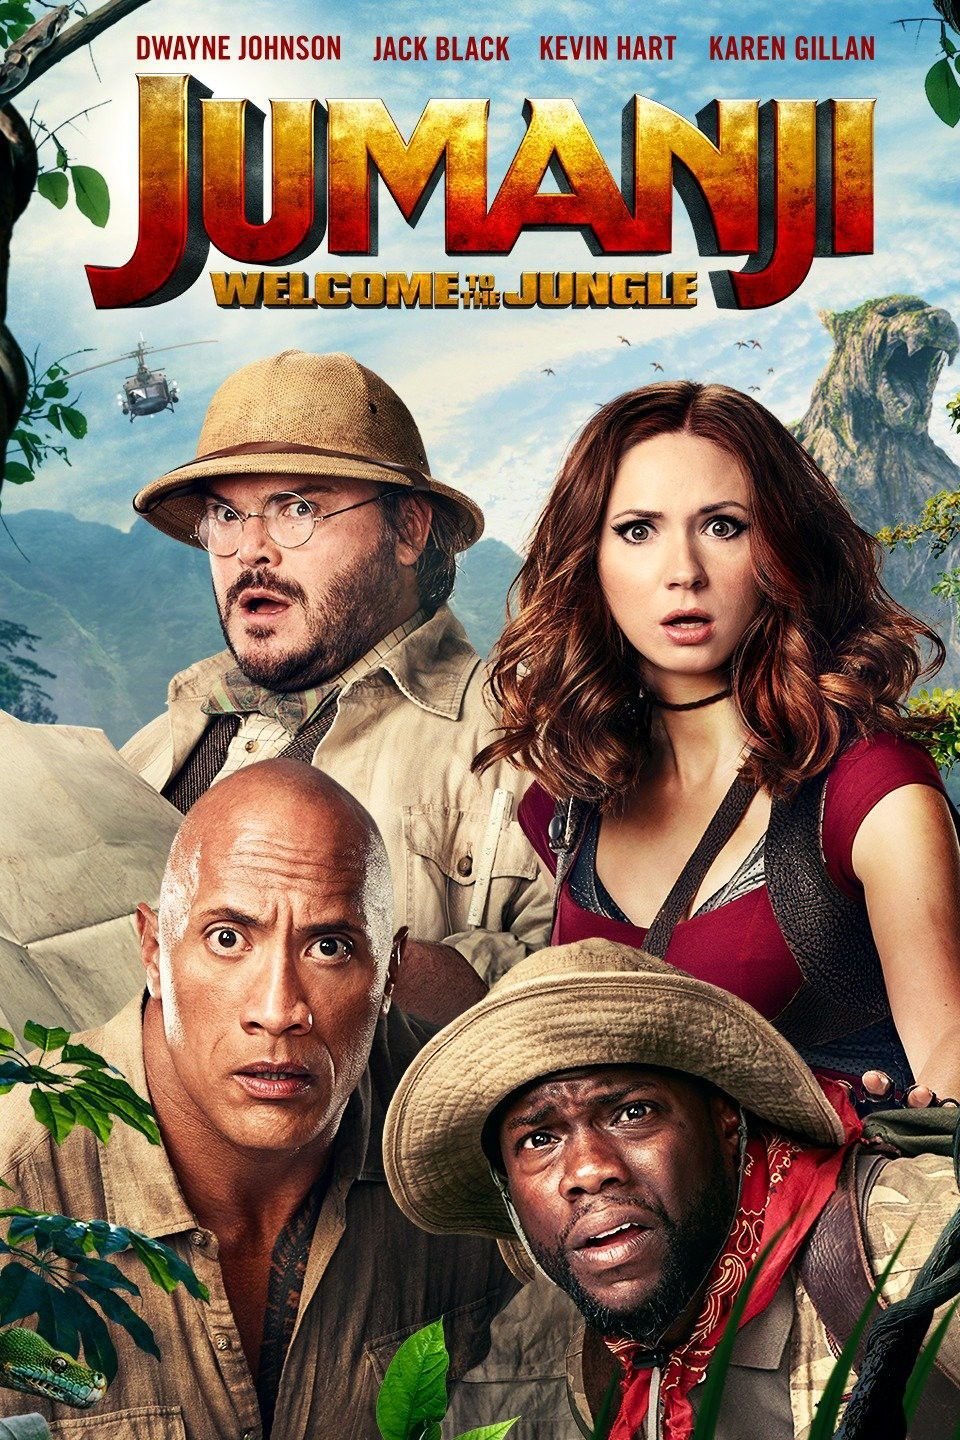 Pg 13 2017 Action Comedy 1h 59m Welcome To The Jungle Adventure Movies Free Movies Online